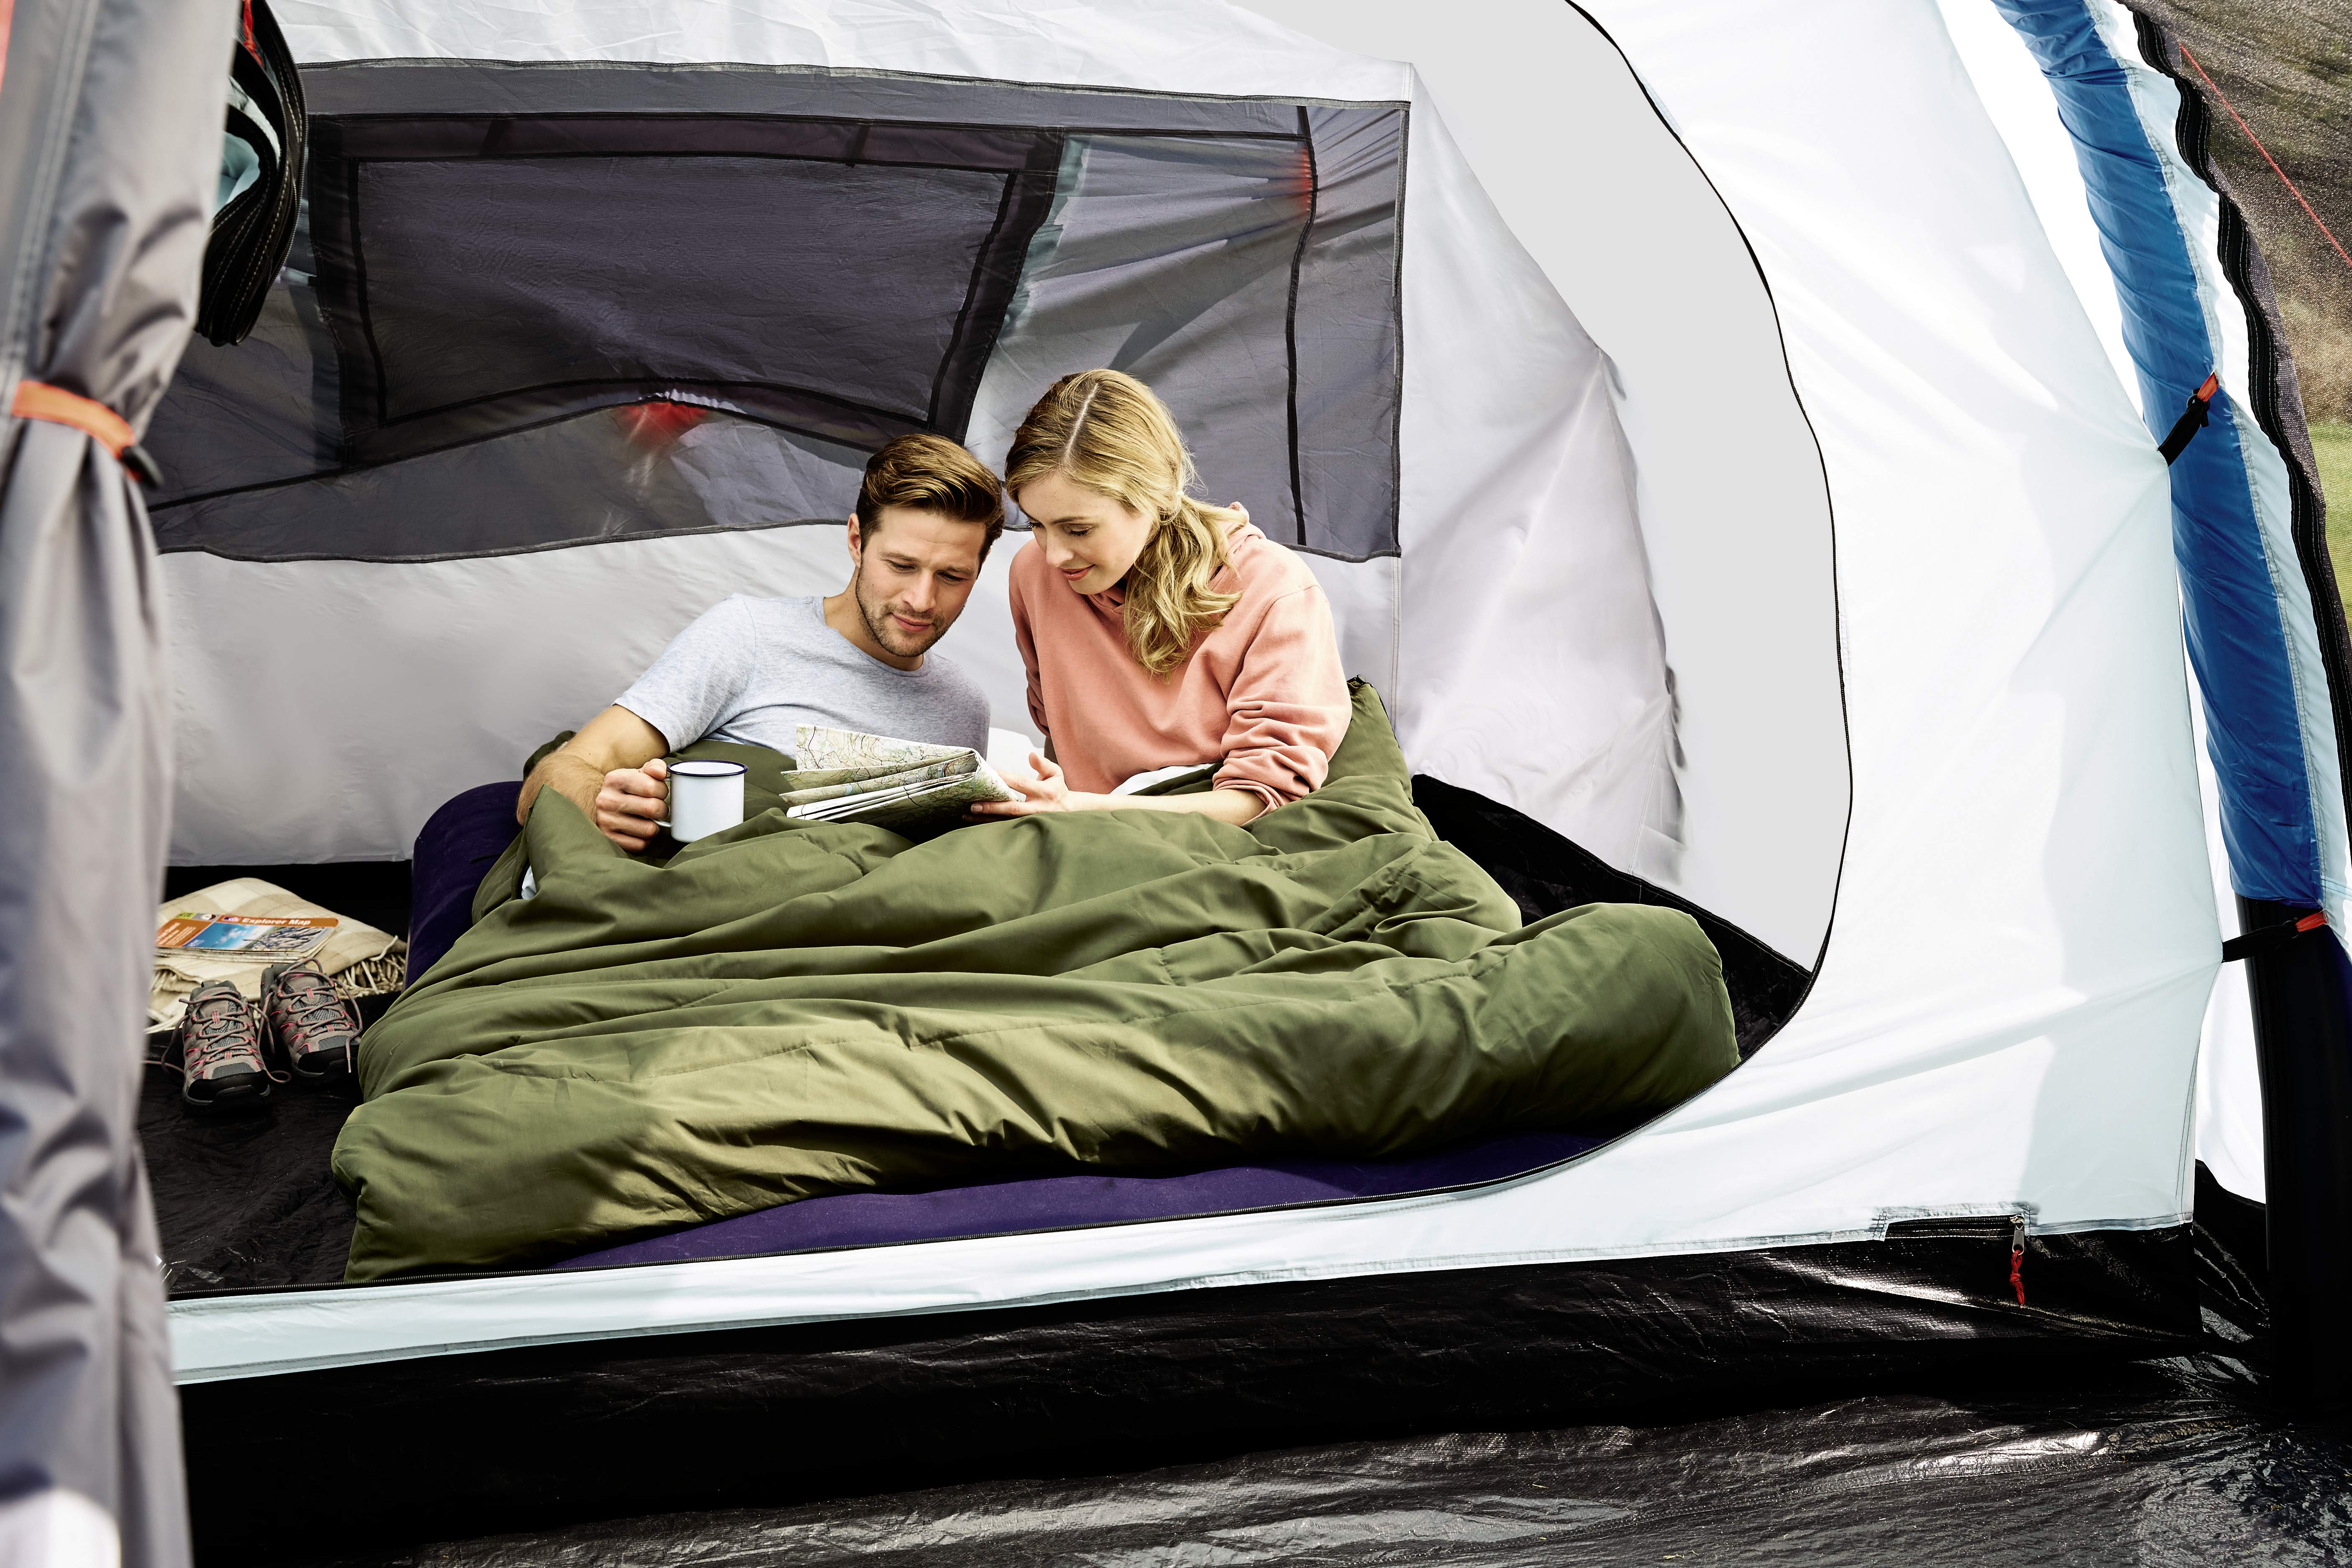 Aldi S New Camping Range Is Sheer Outdoor Luxury And The